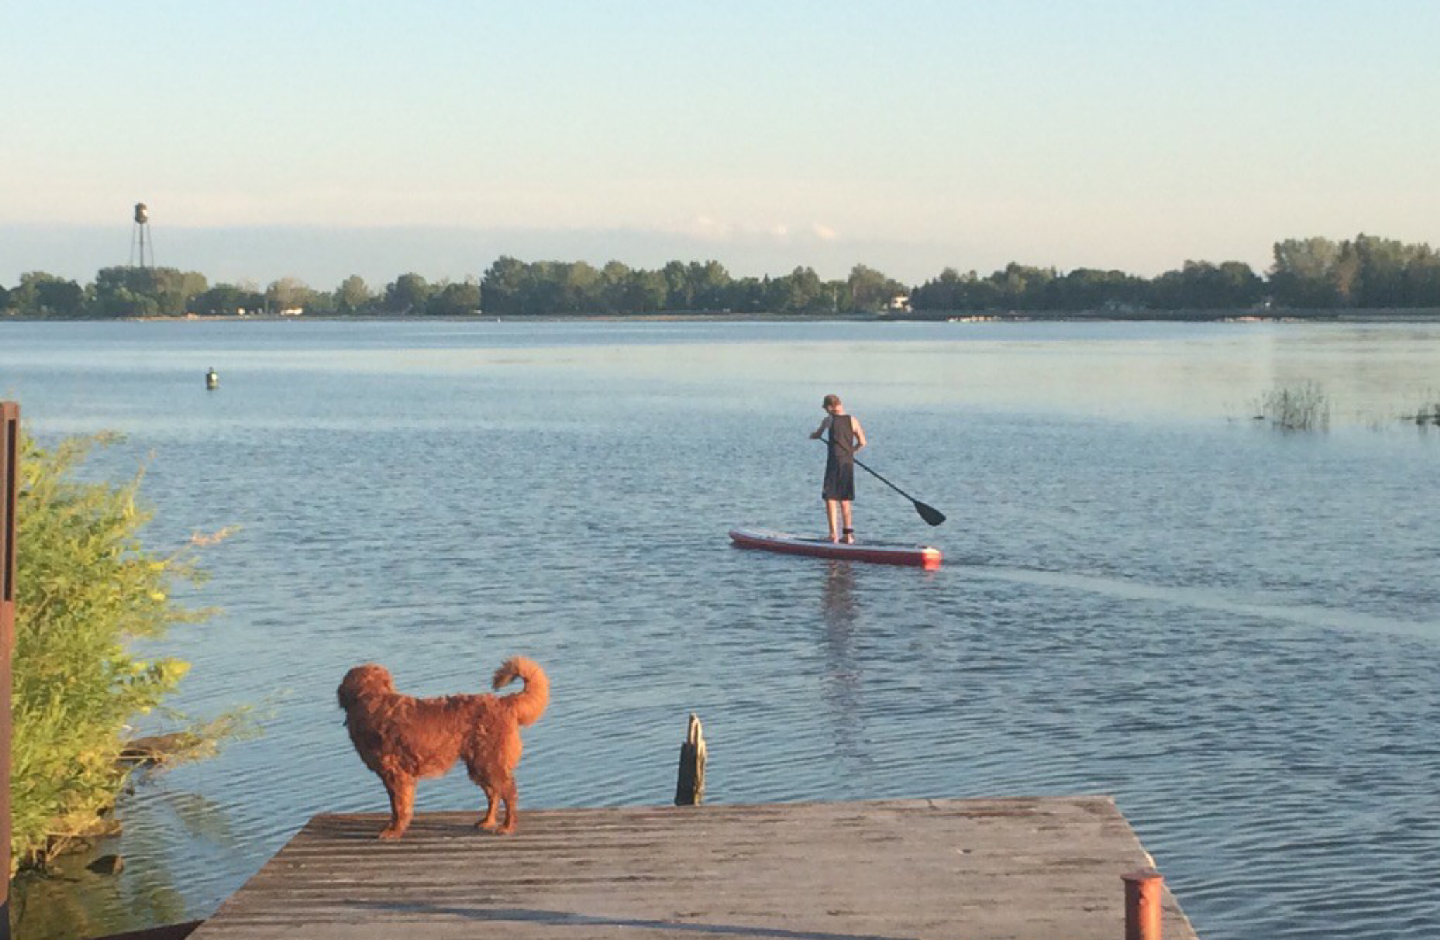 Paddle boarder dog on a deck